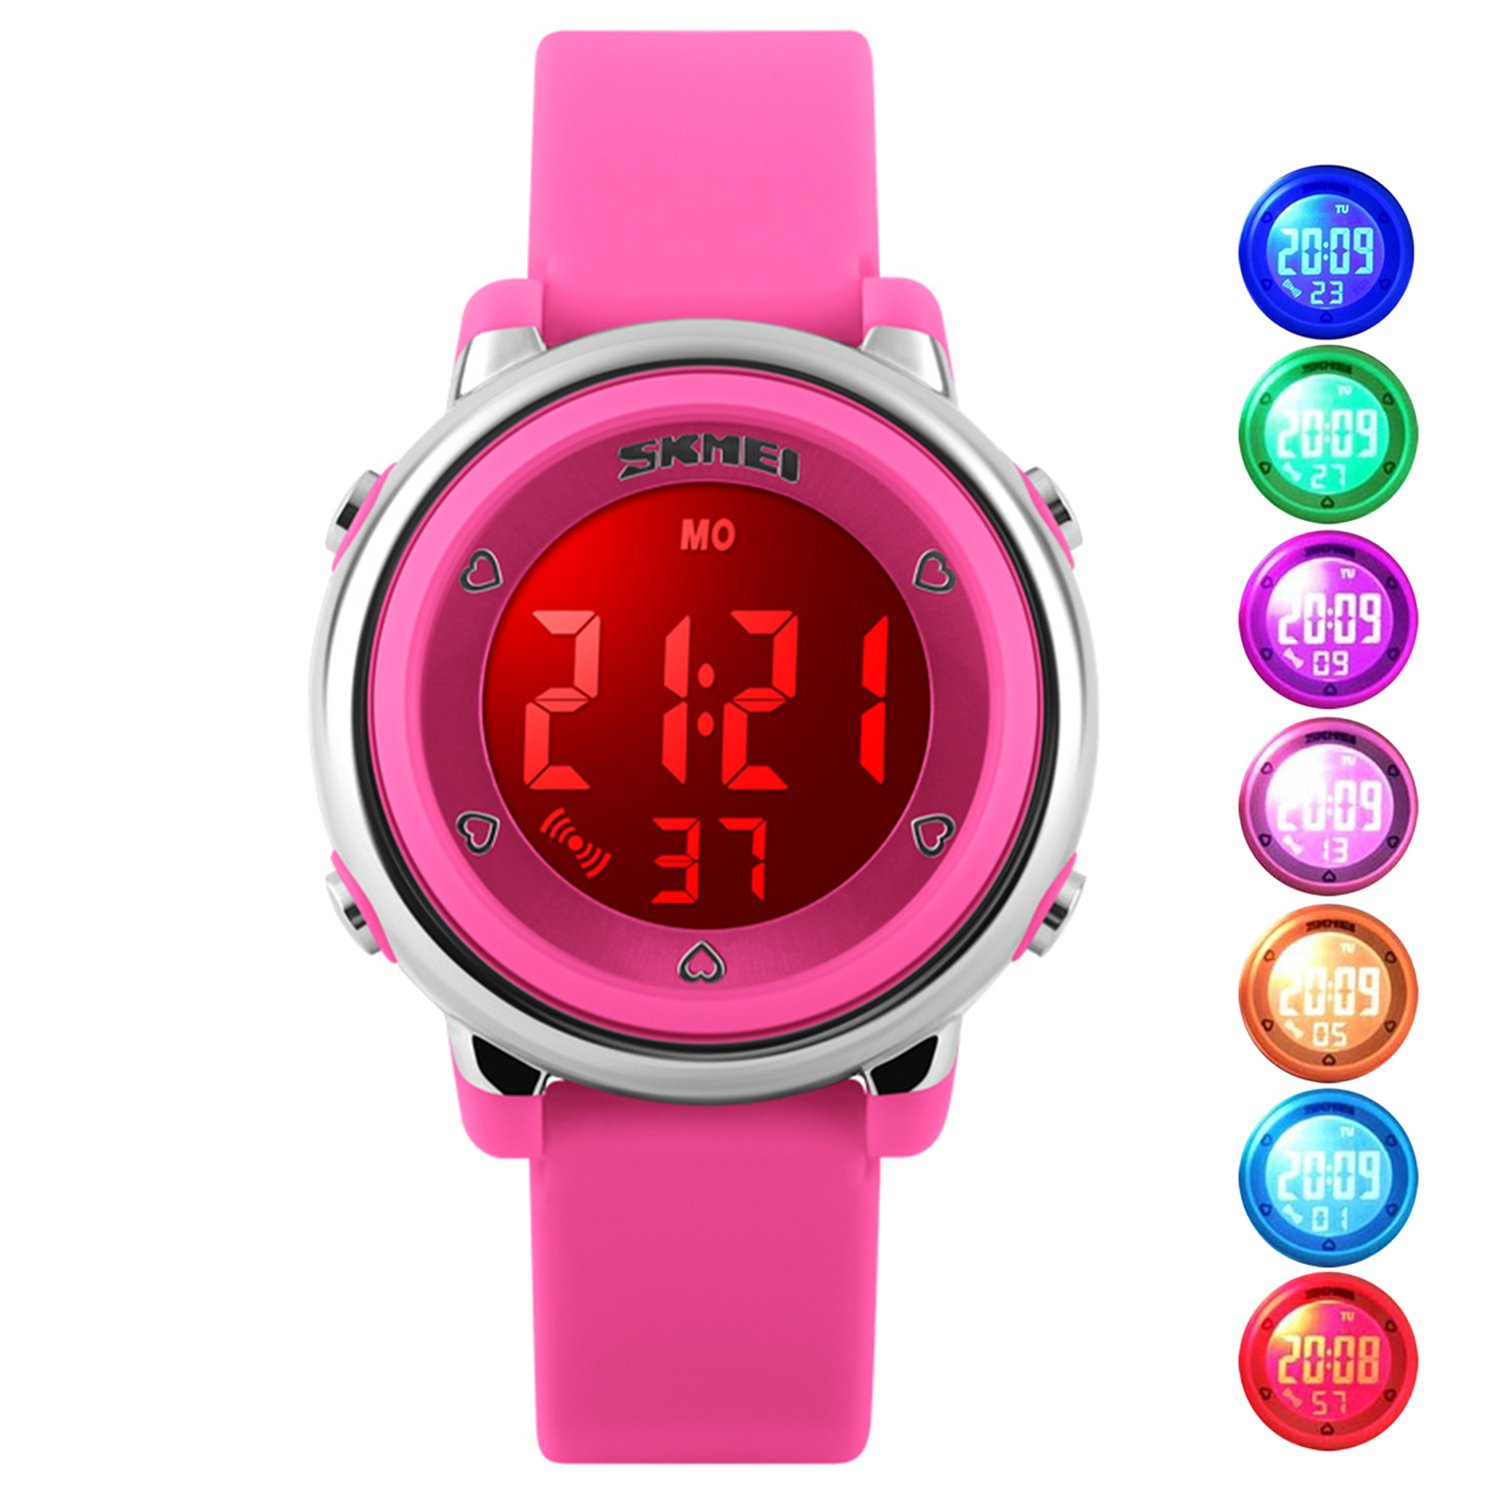 Kid Watch Multi Function 50M Waterproof Sport LED Alarm Stopwatch Digital Child Wristwatch for Boy Girl Pink by USWAT